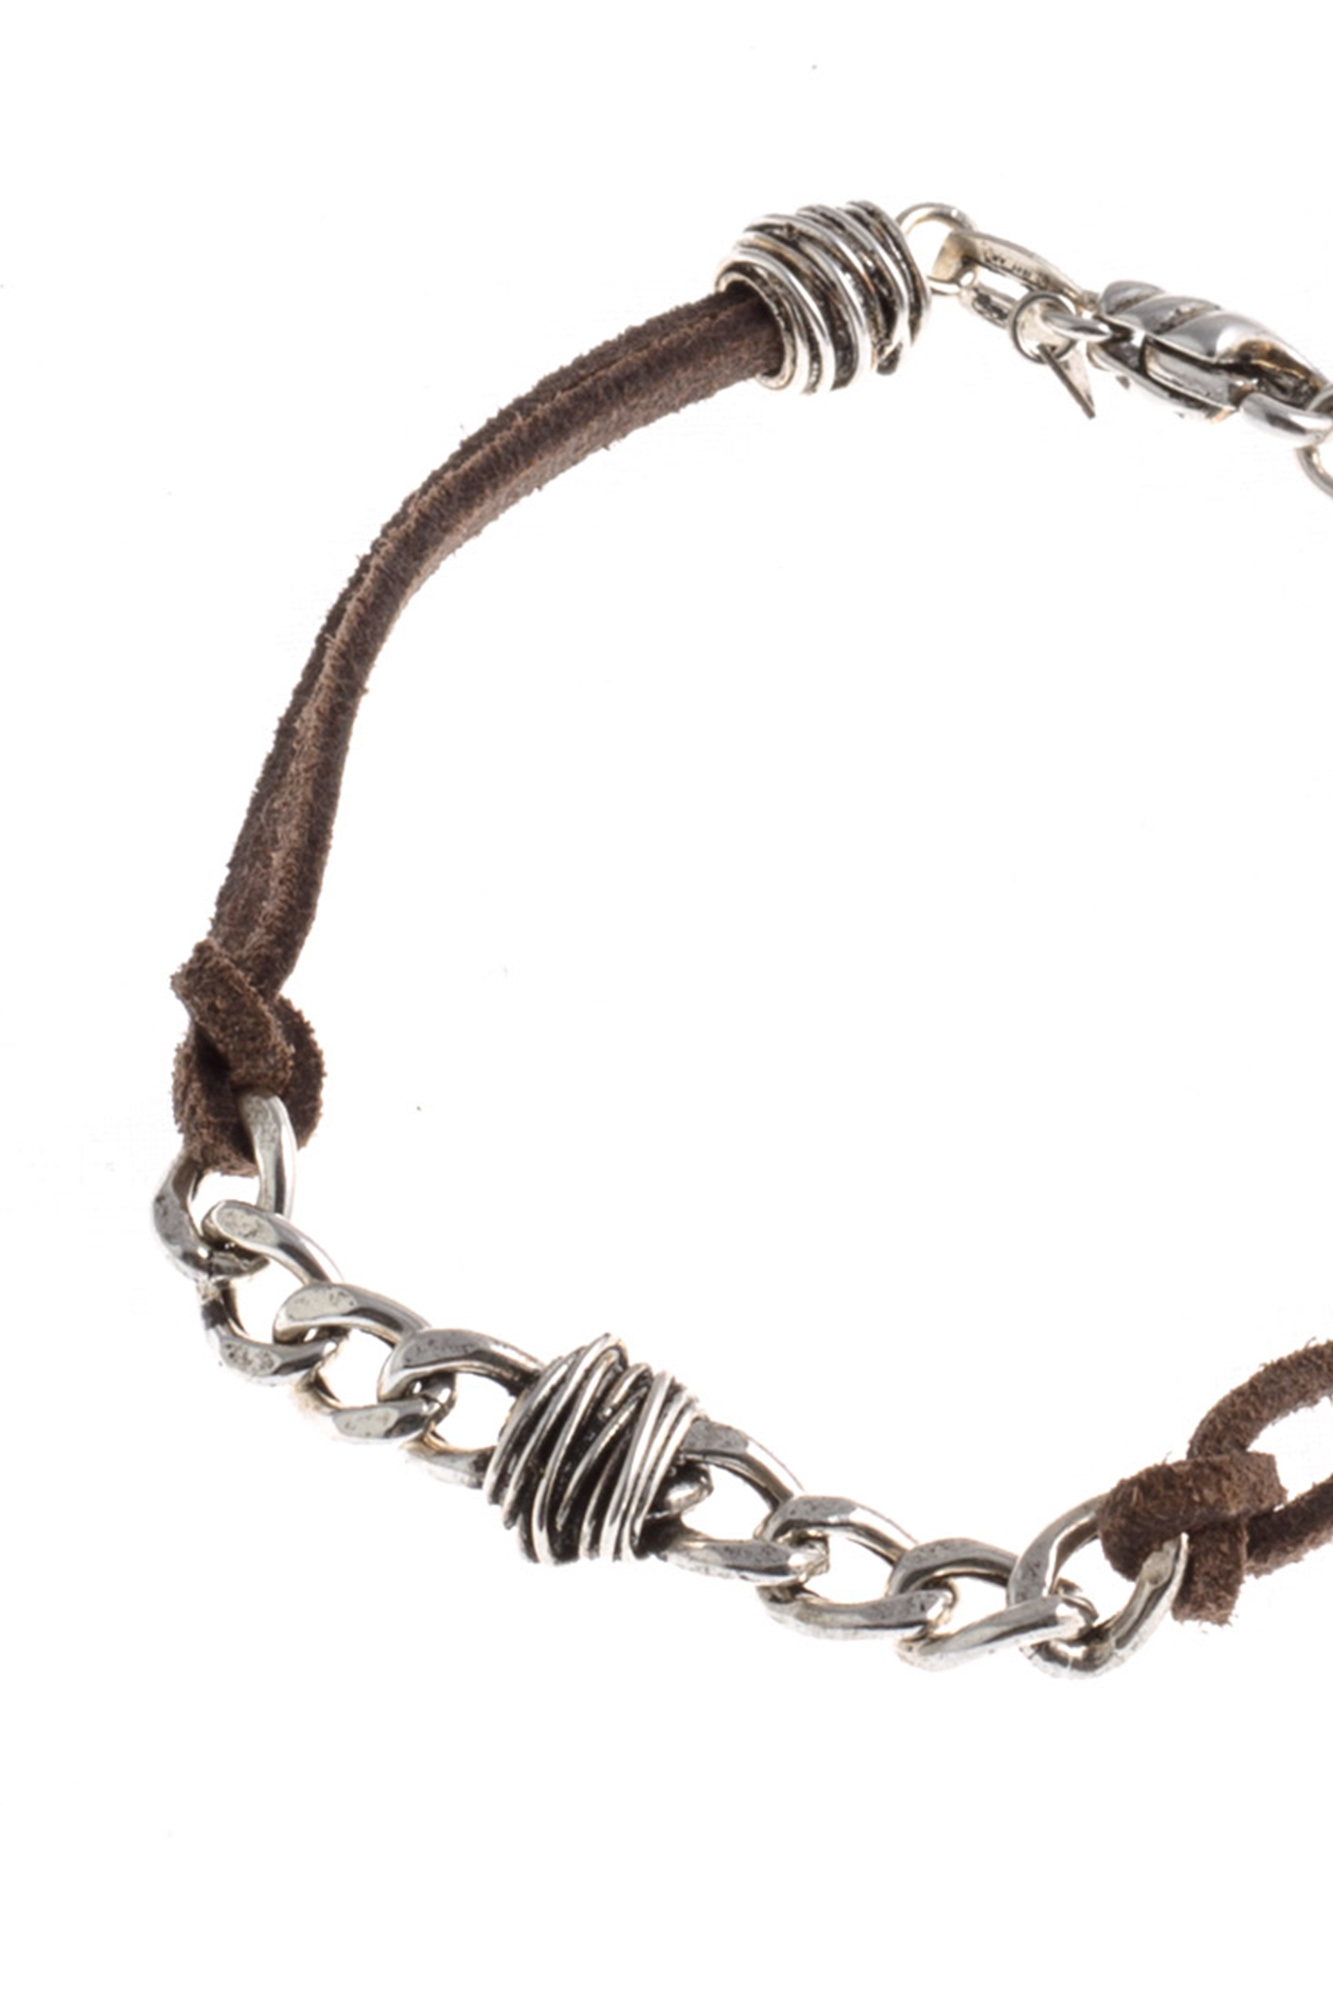 Giacomo Burroni - Silver Bracelet with Leather Strap and Wrapped Wire Chain